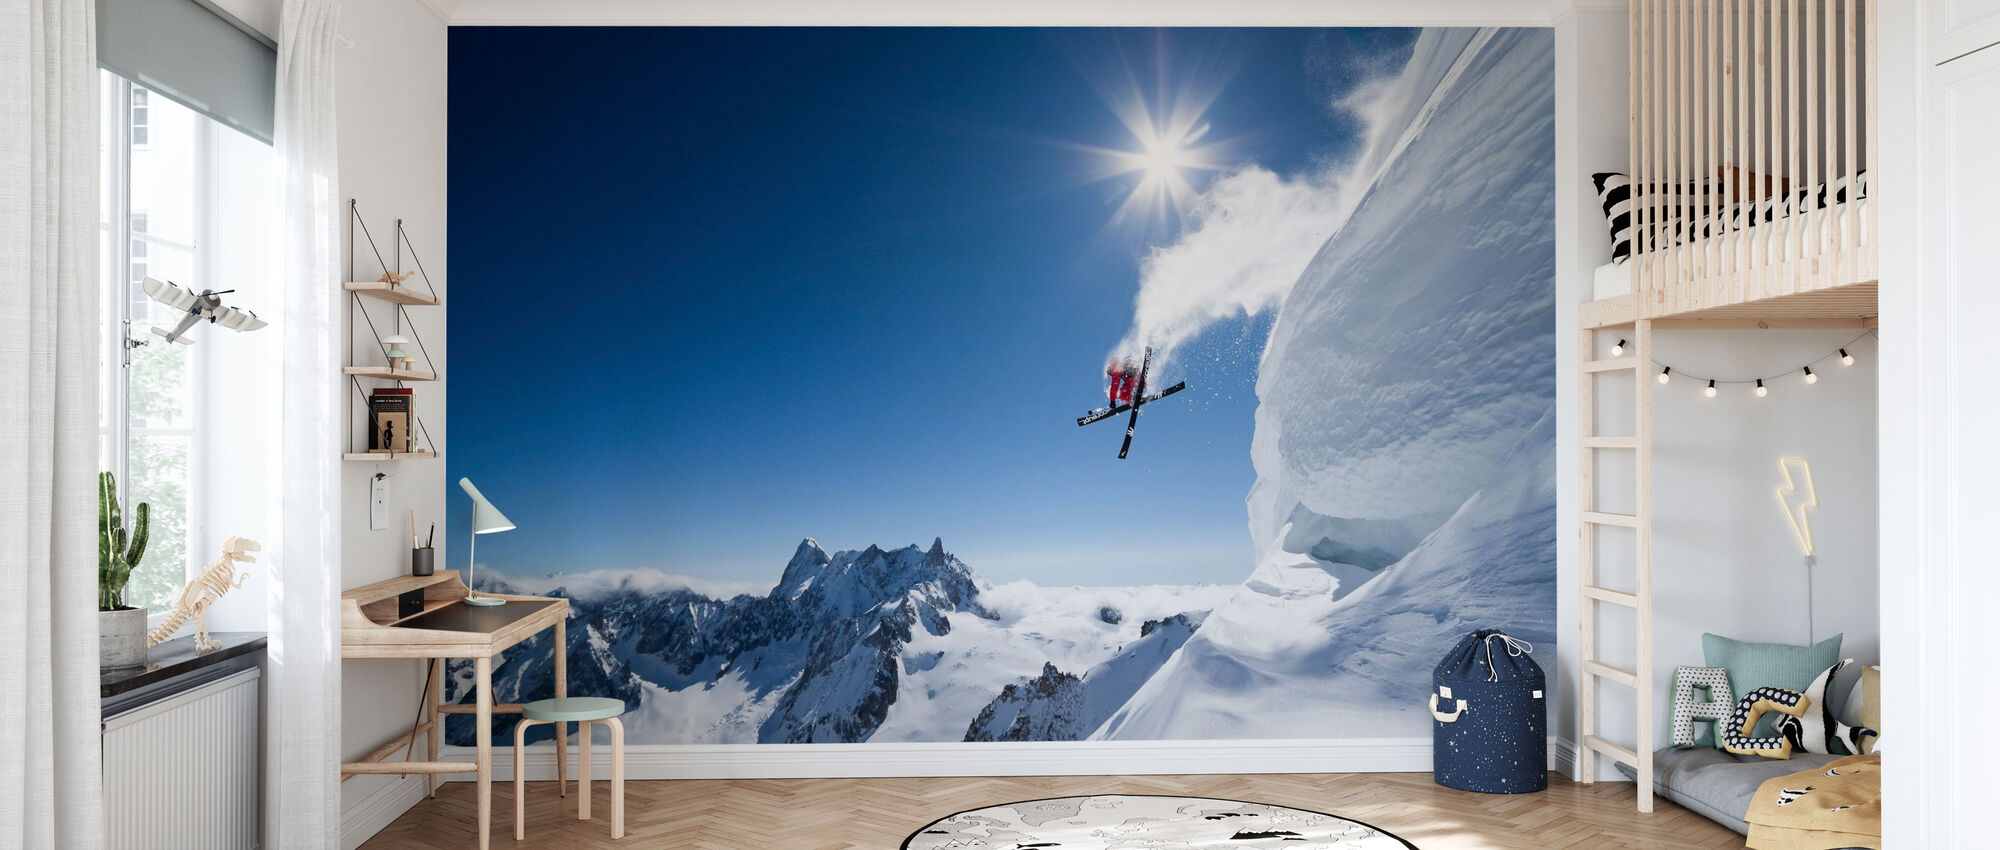 Extreme Skiing - Wallpaper - Kids Room